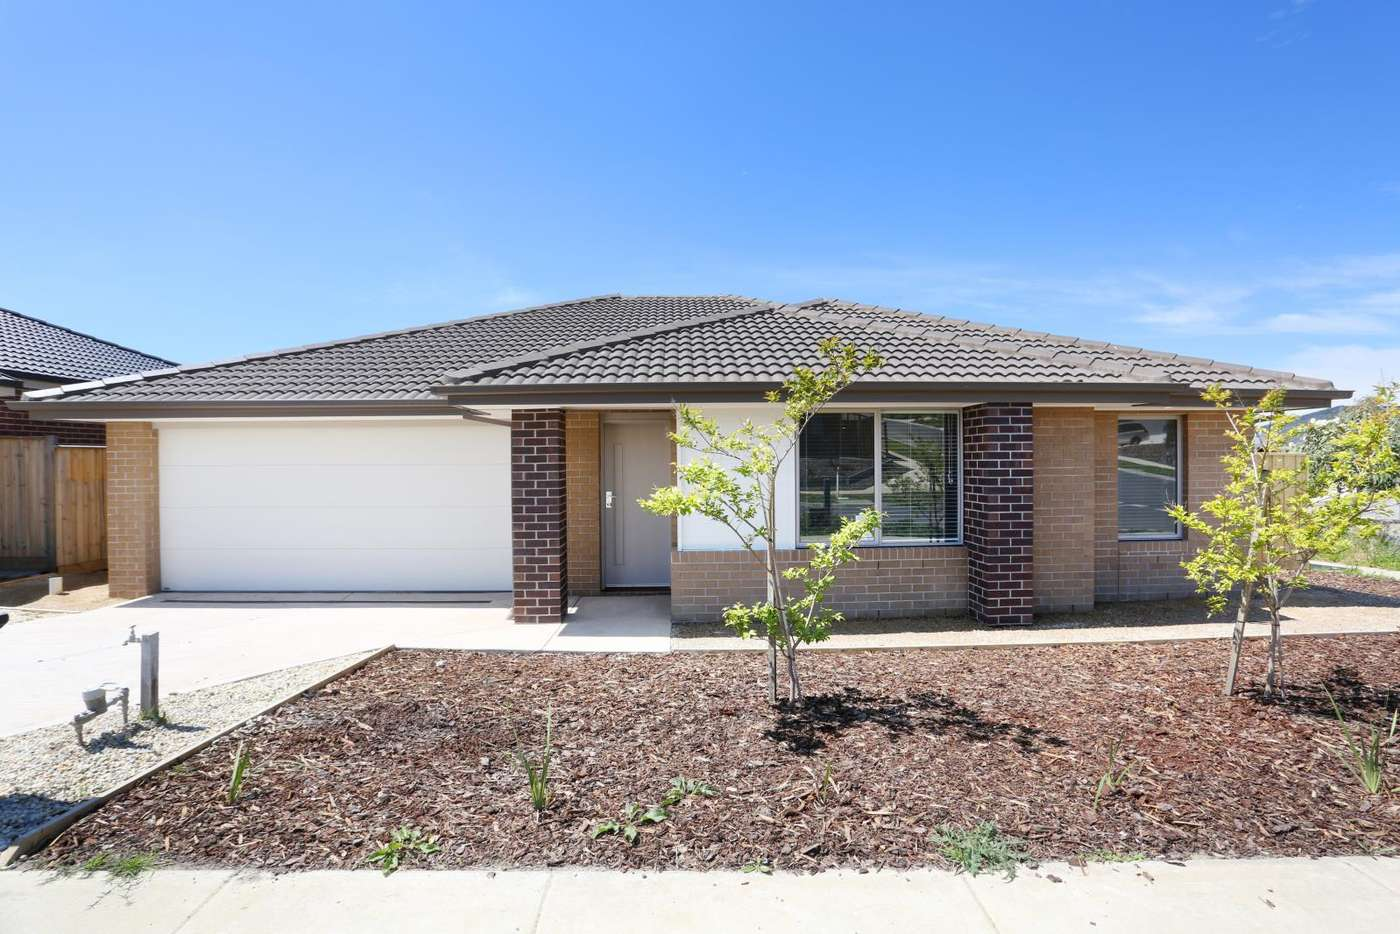 Main view of Homely house listing, 17 Oliver Street, Doreen VIC 3754